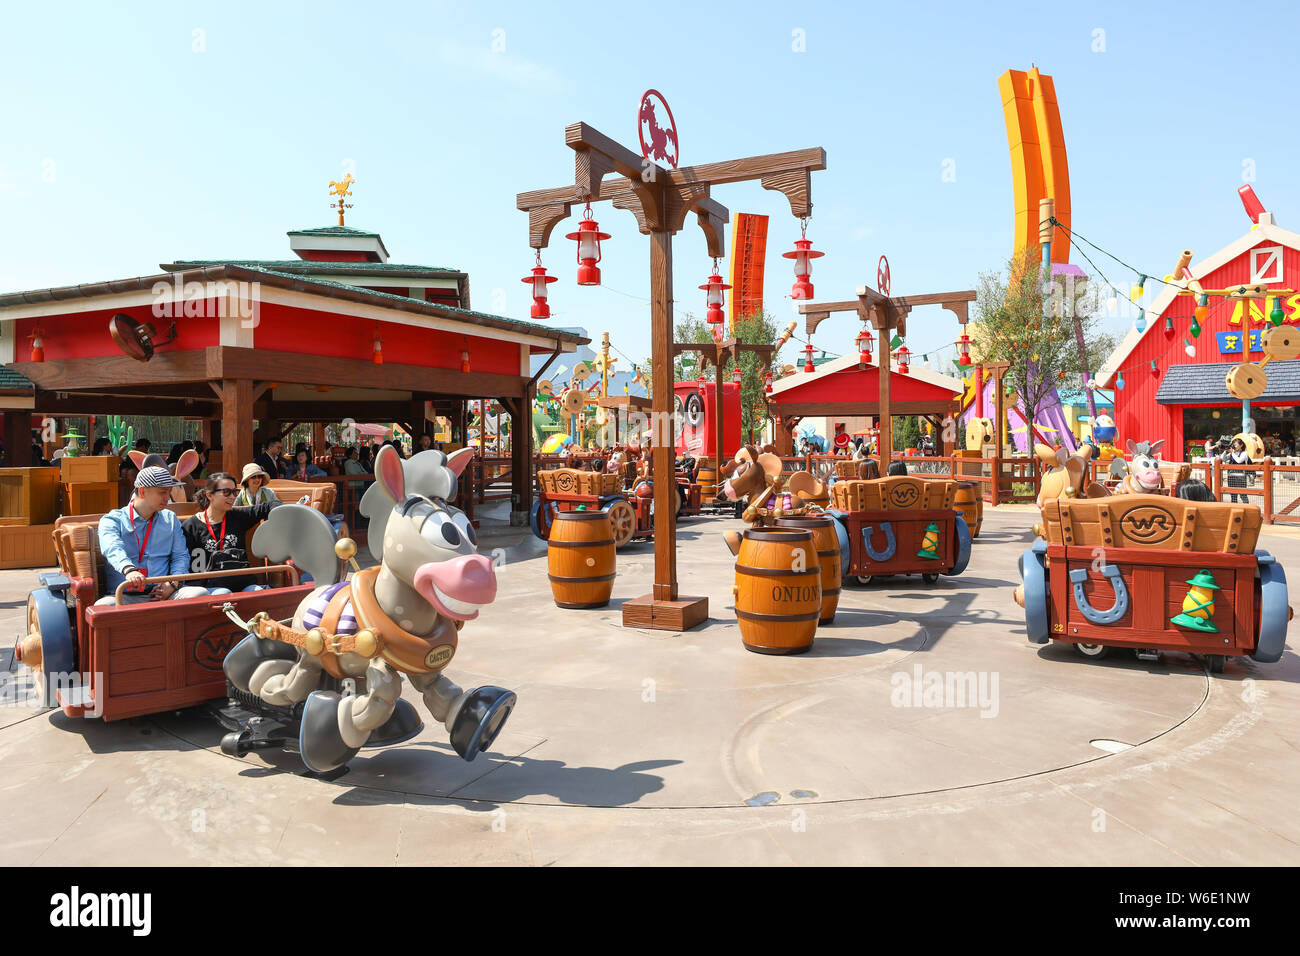 Cars Road Trip [Toon Studio - 2021] - Page 23 Tourists-enjoy-themselves-in-the-seventh-themed-land-disney-pixar-toy-story-land-in-the-shanghai-disneyland-at-the-shanghai-disney-resort-in-pudong-W6E1NW